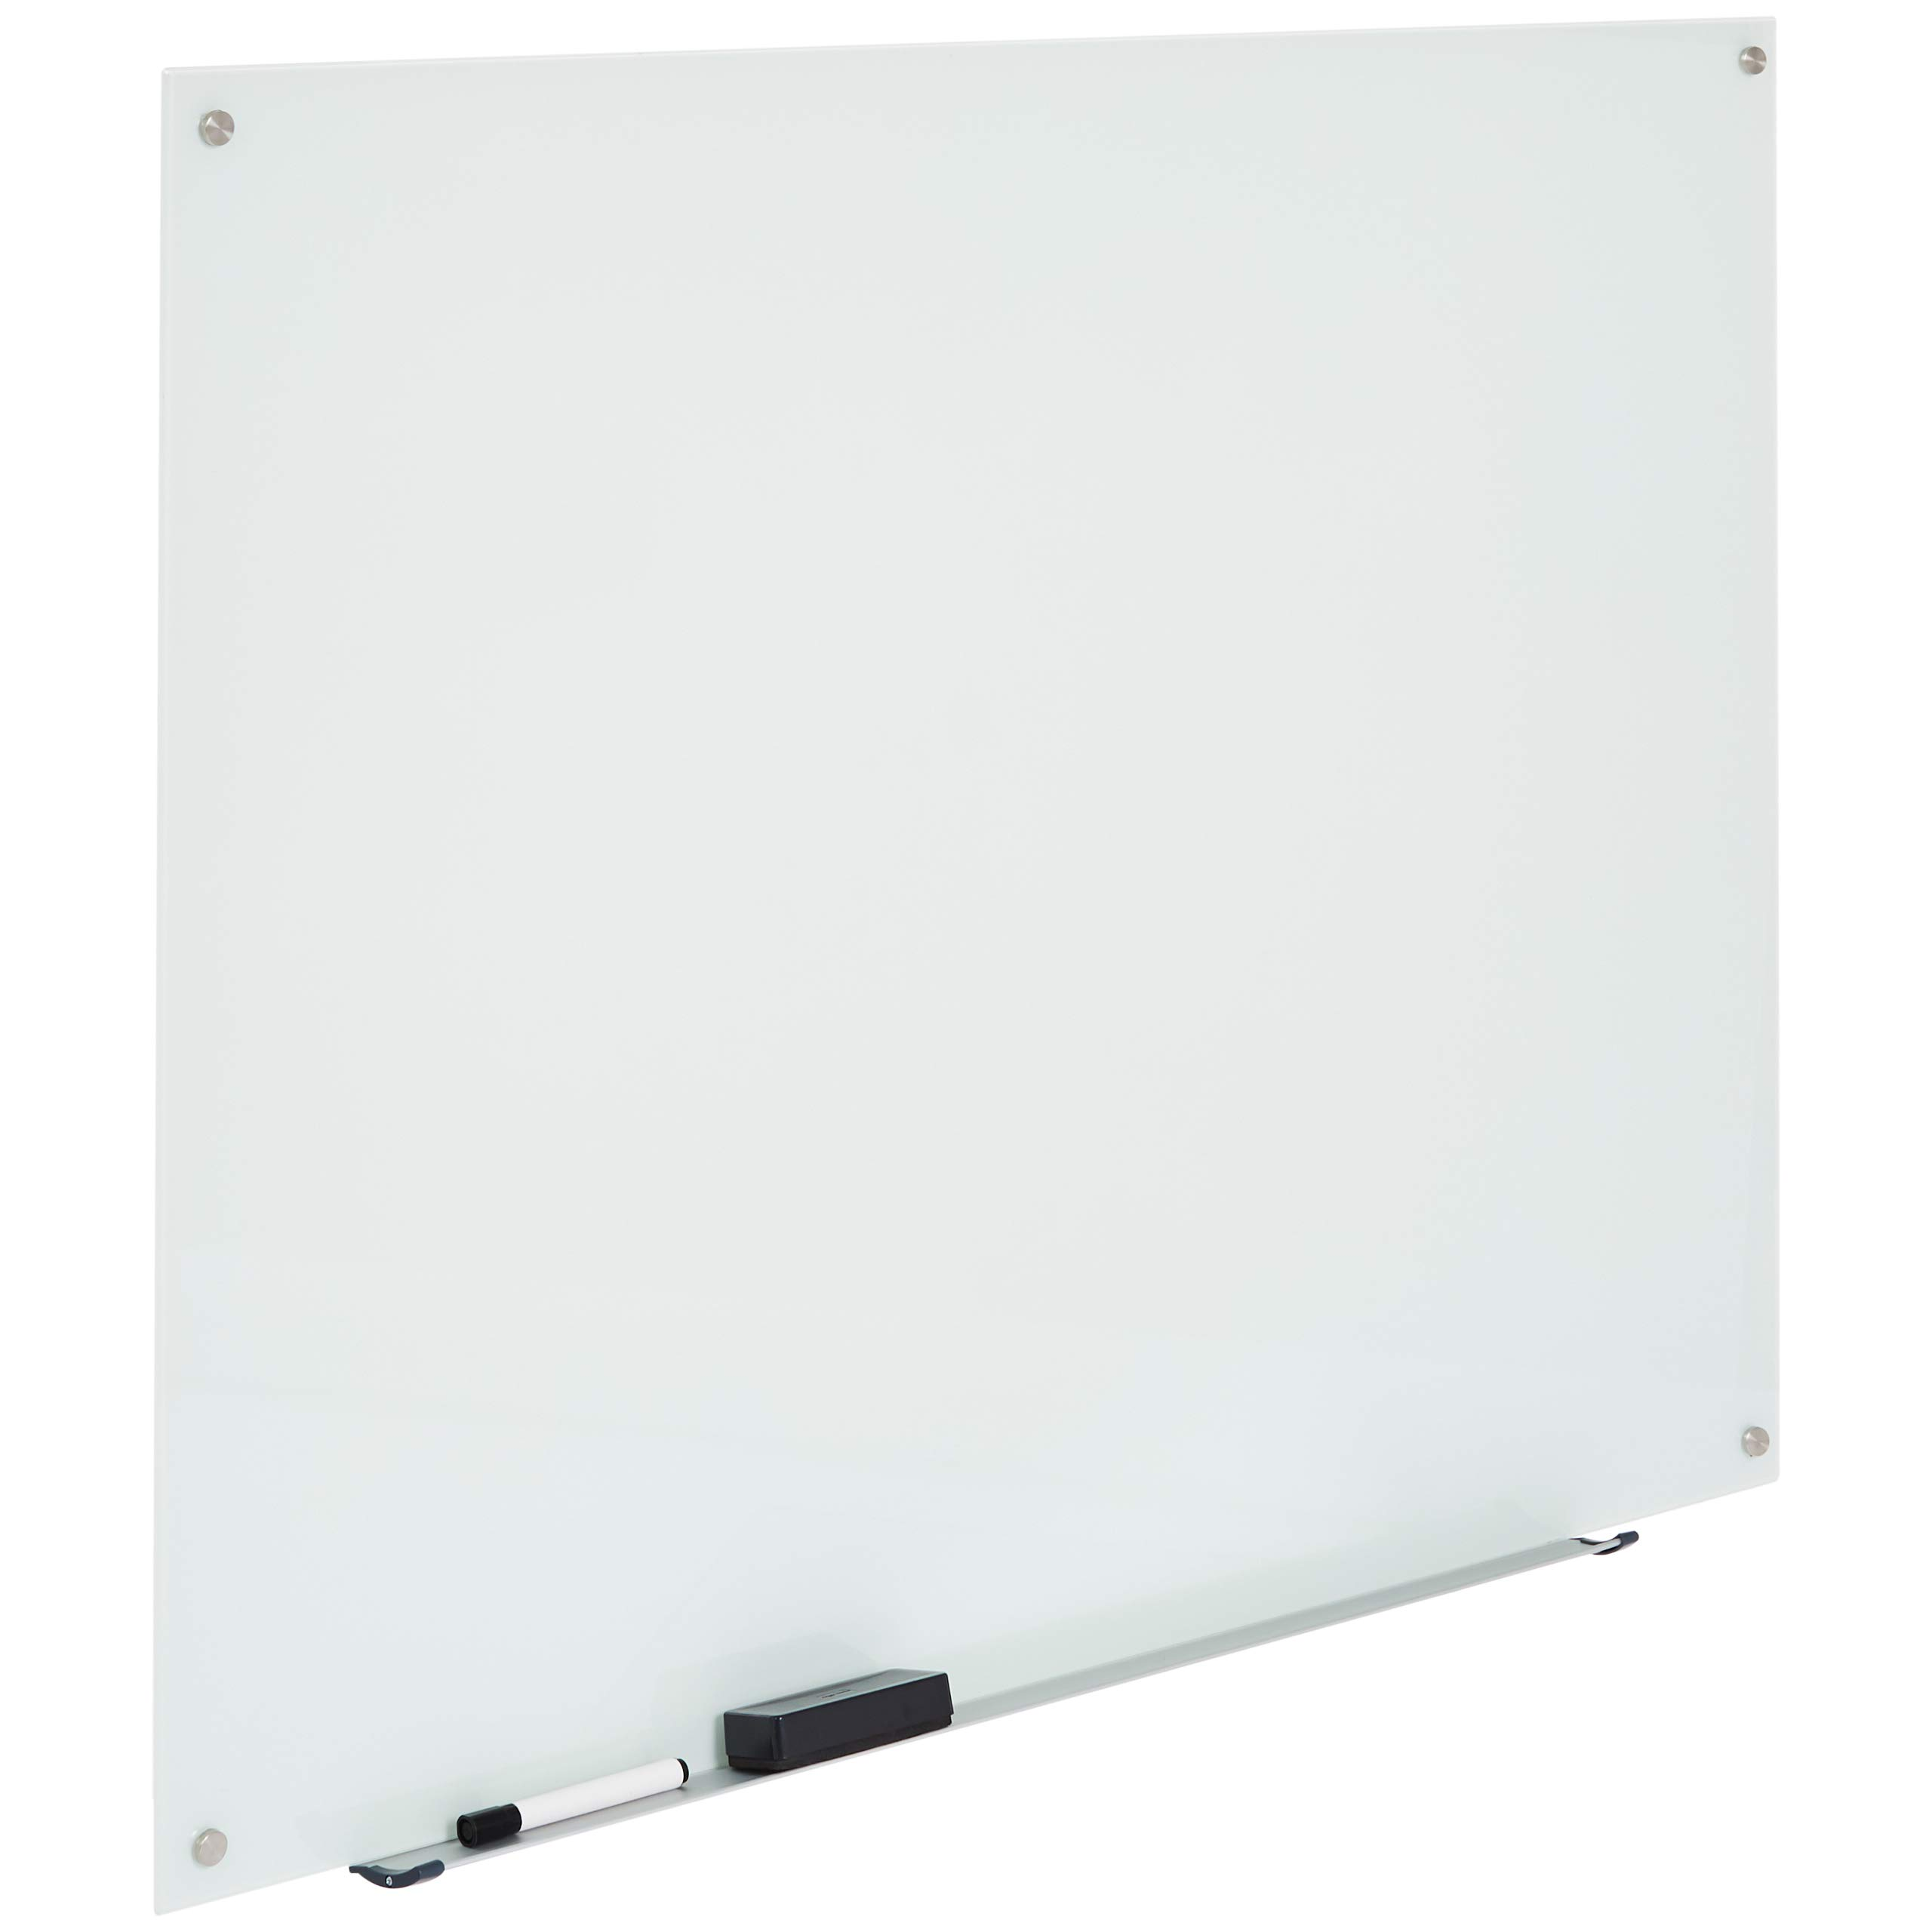 AmazonBasics Glass Dry-Erase Board - White, Magnetic, 4 Feet x 3 Feet